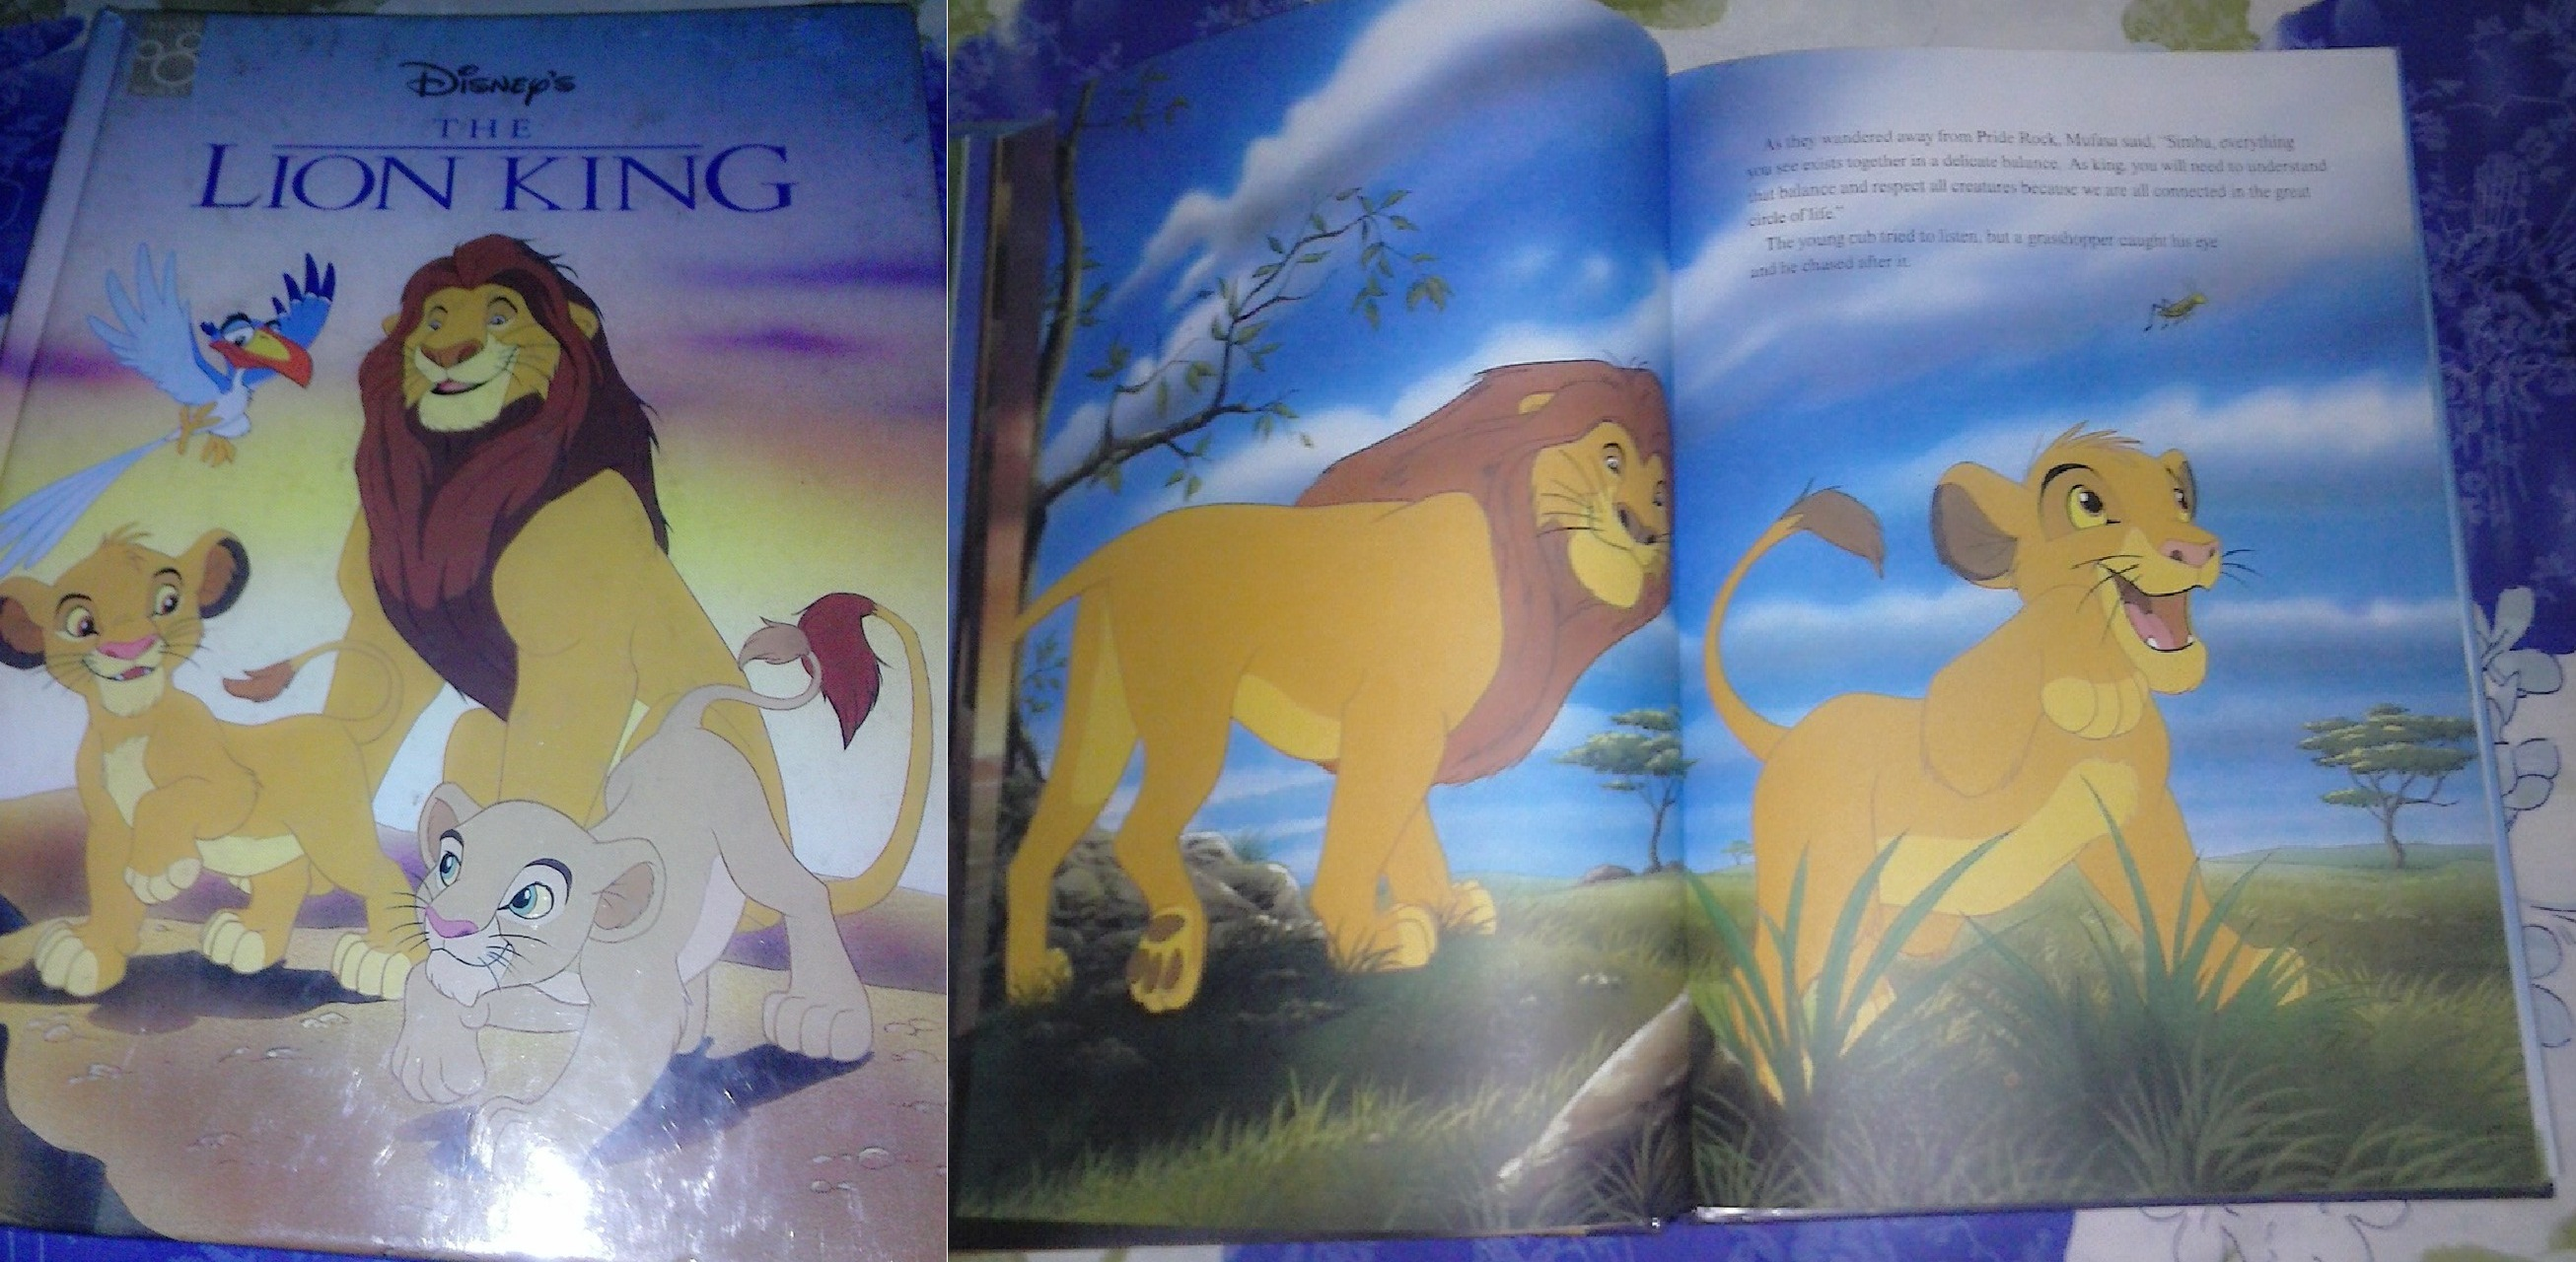 lion king stuff - the lion king